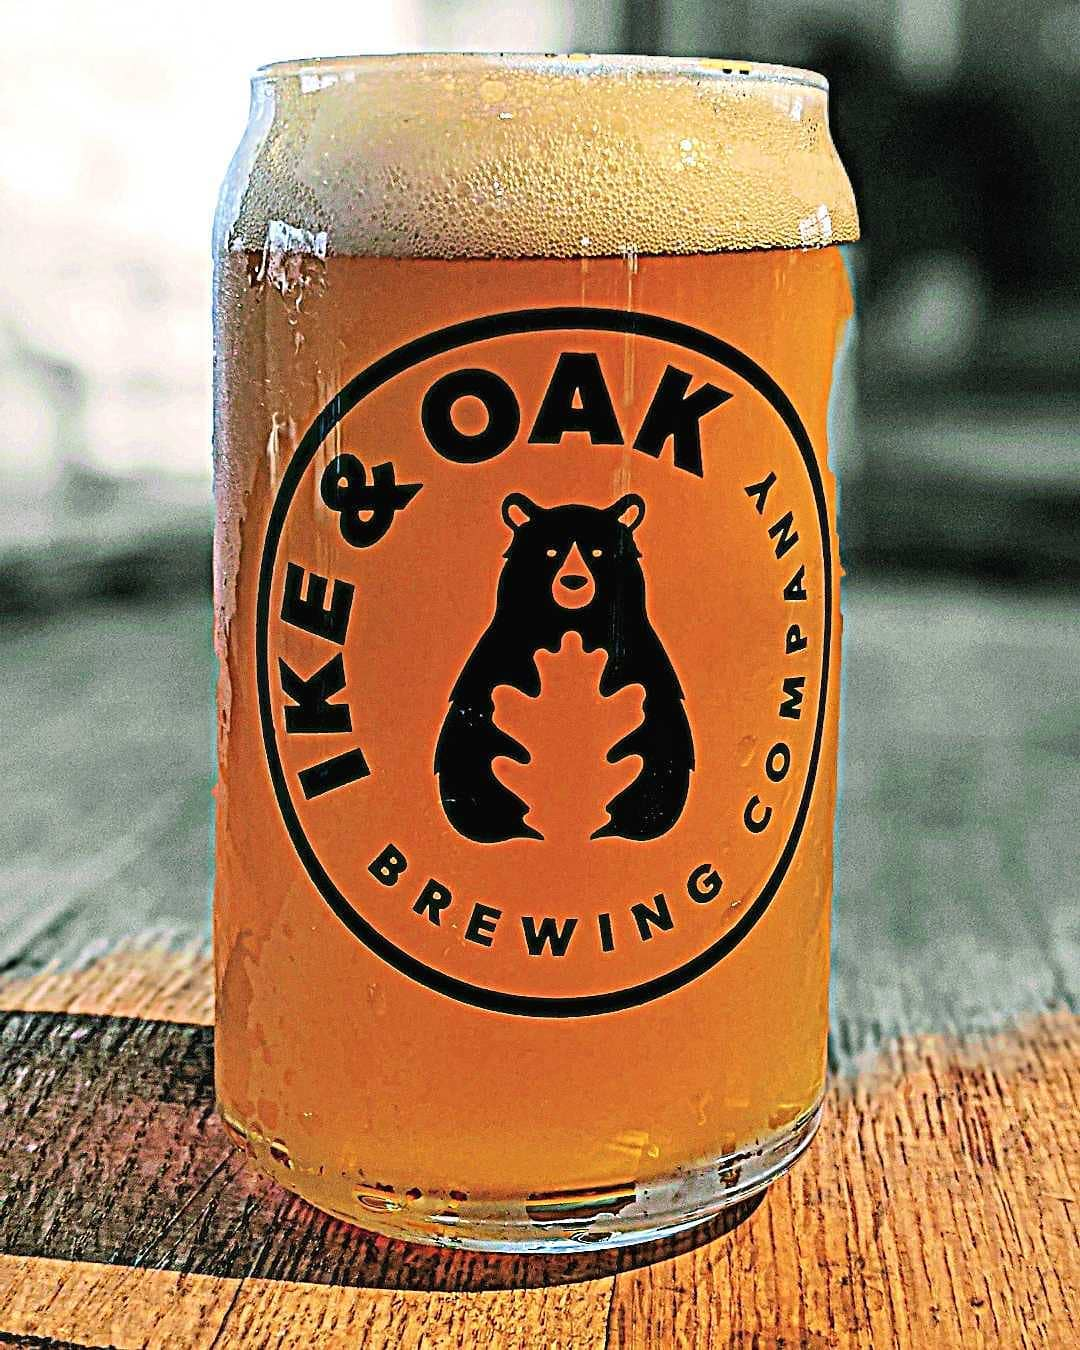 Full glass of Ike & Oak's Broken Carabiner